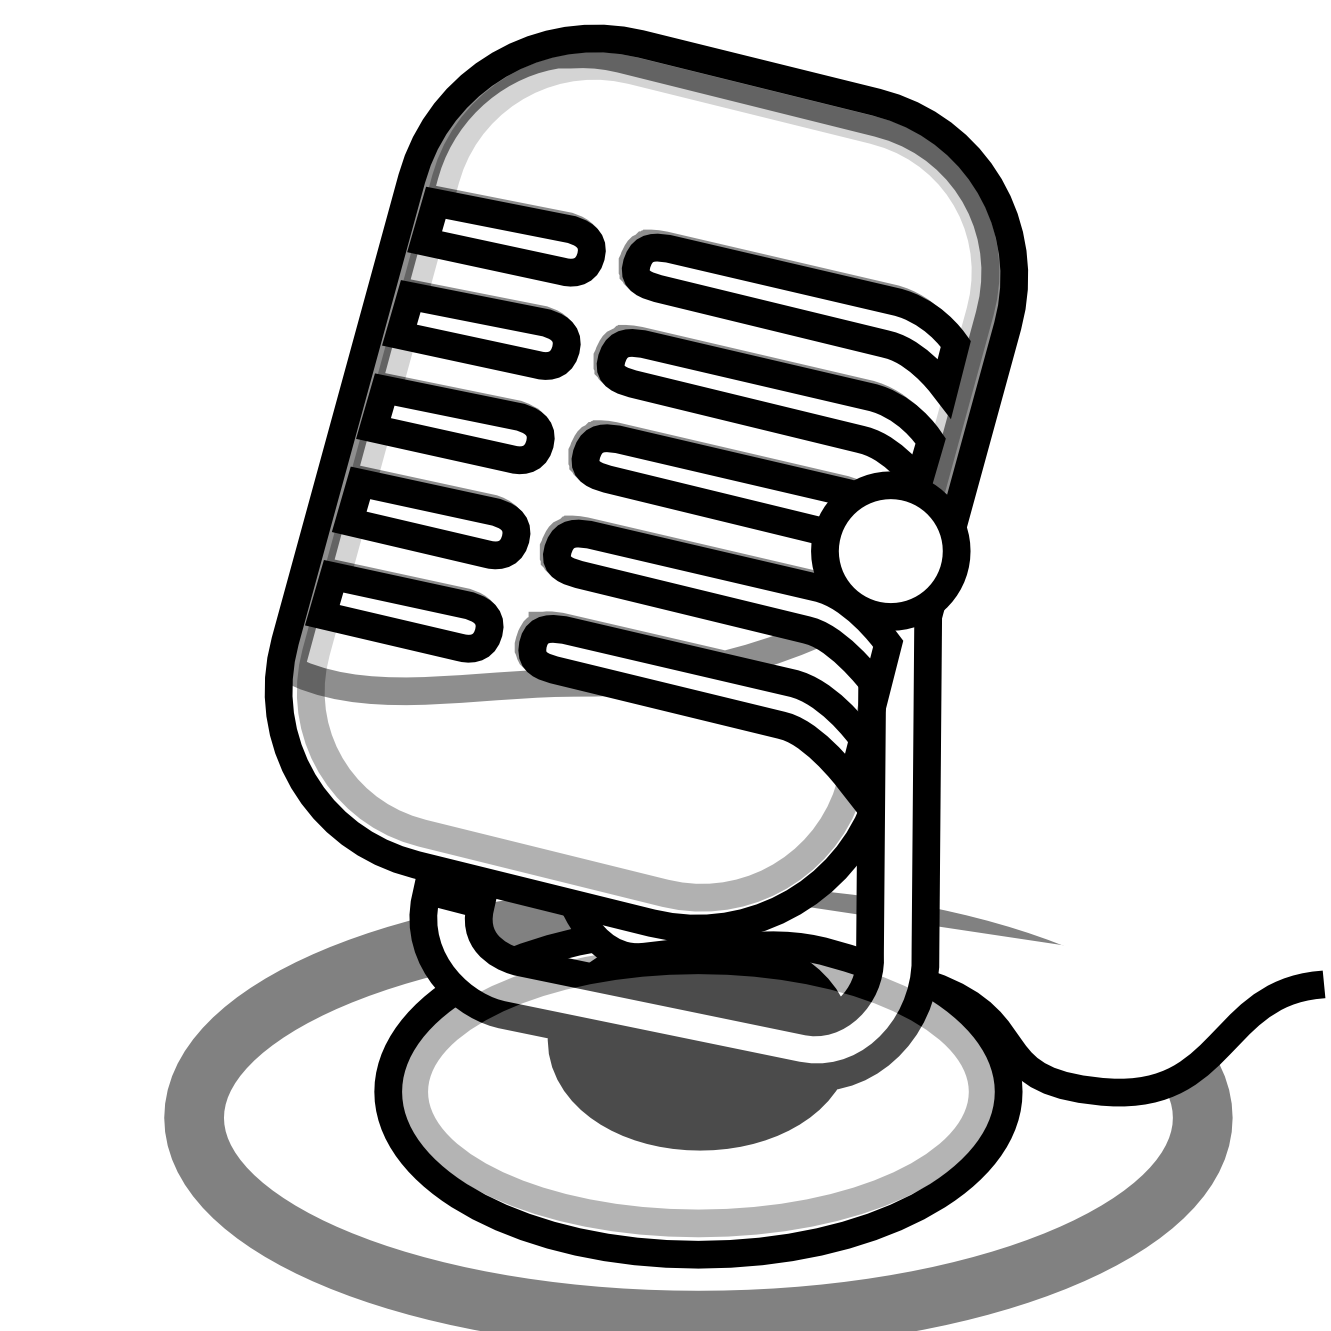 clip art freeuse download Microphone Clip Art Black And White